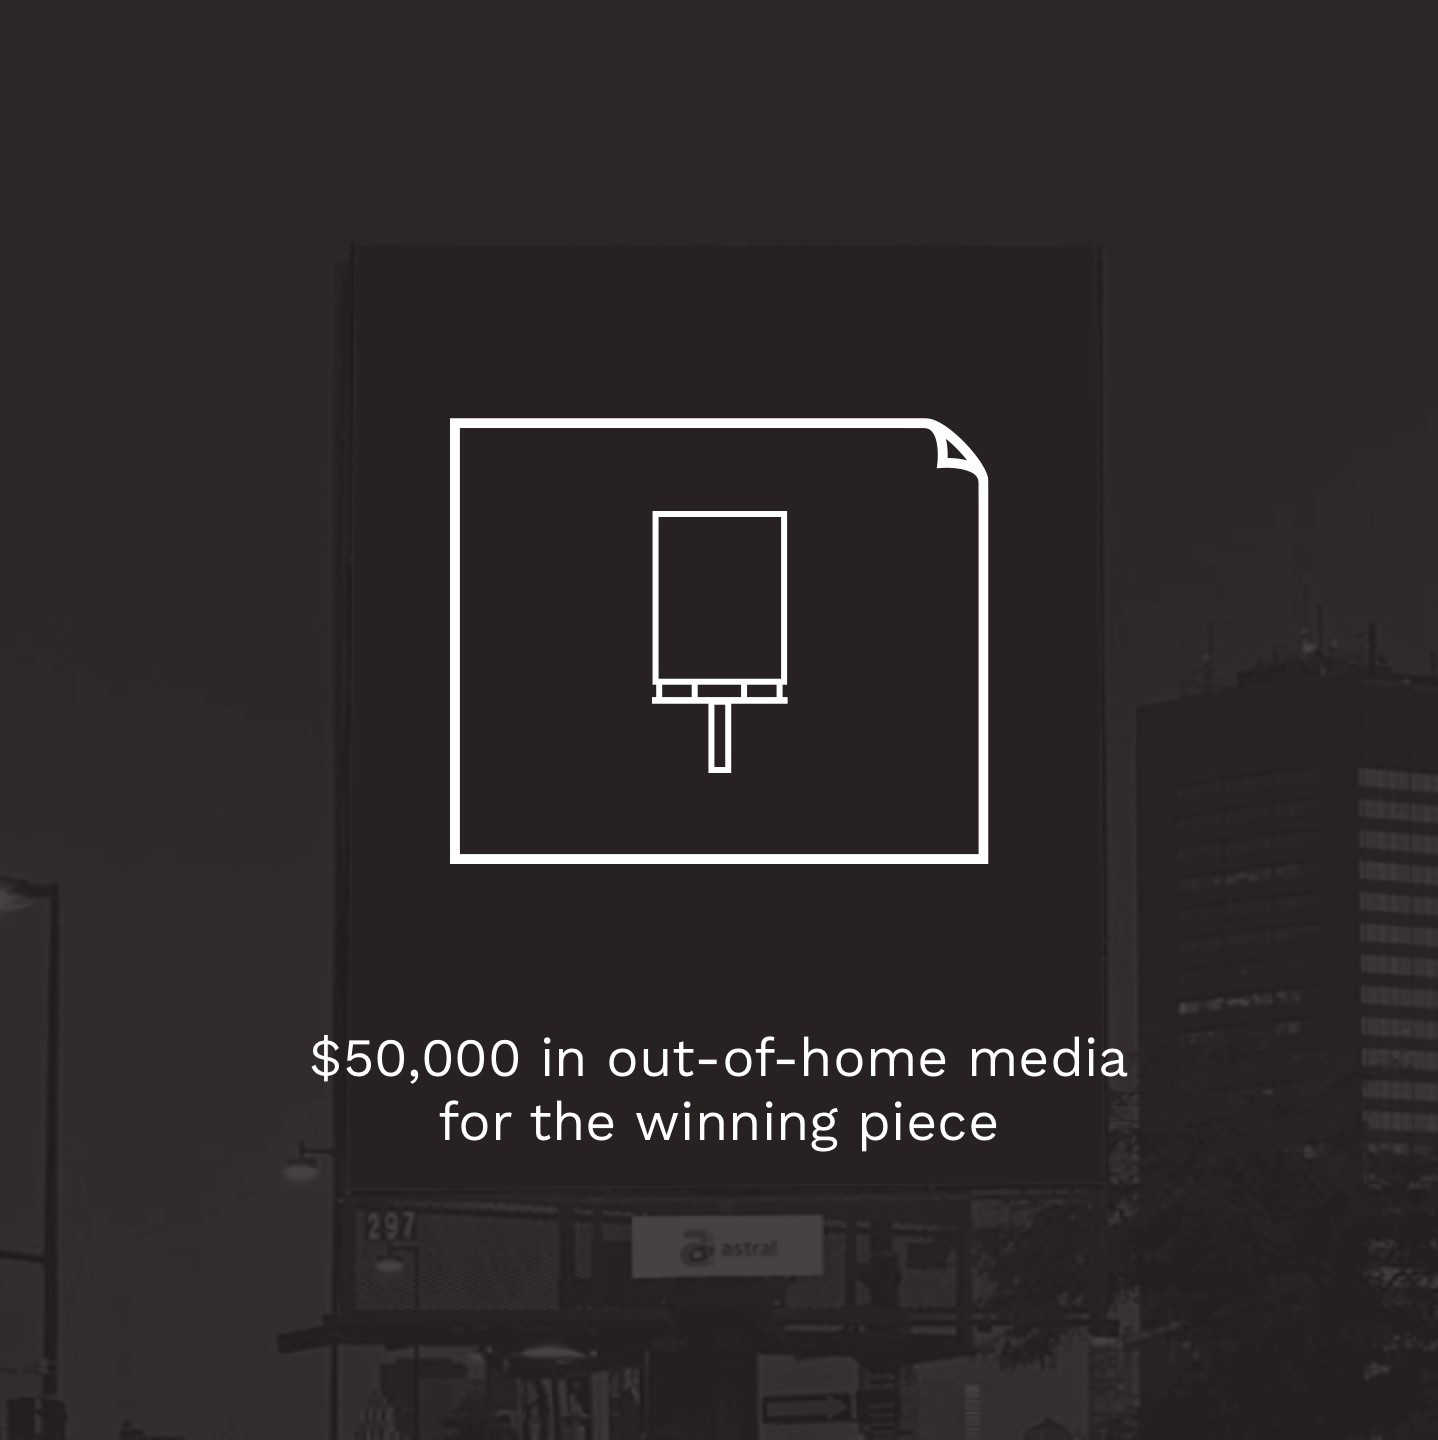 $50,000 in out-of-home media for the winning piece